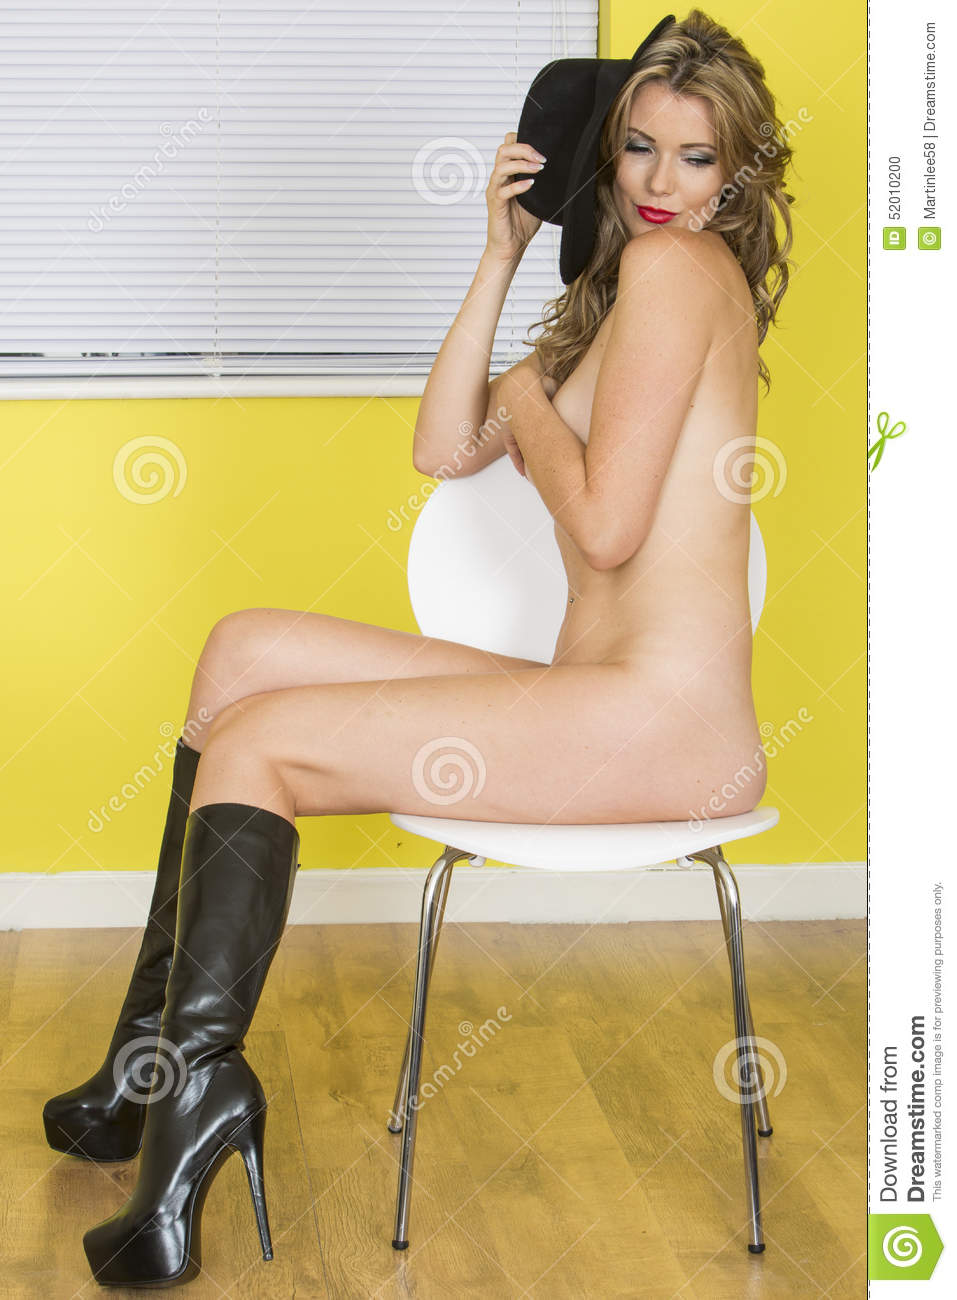 Naked Women Wearing Boots And Masterbaiting 23